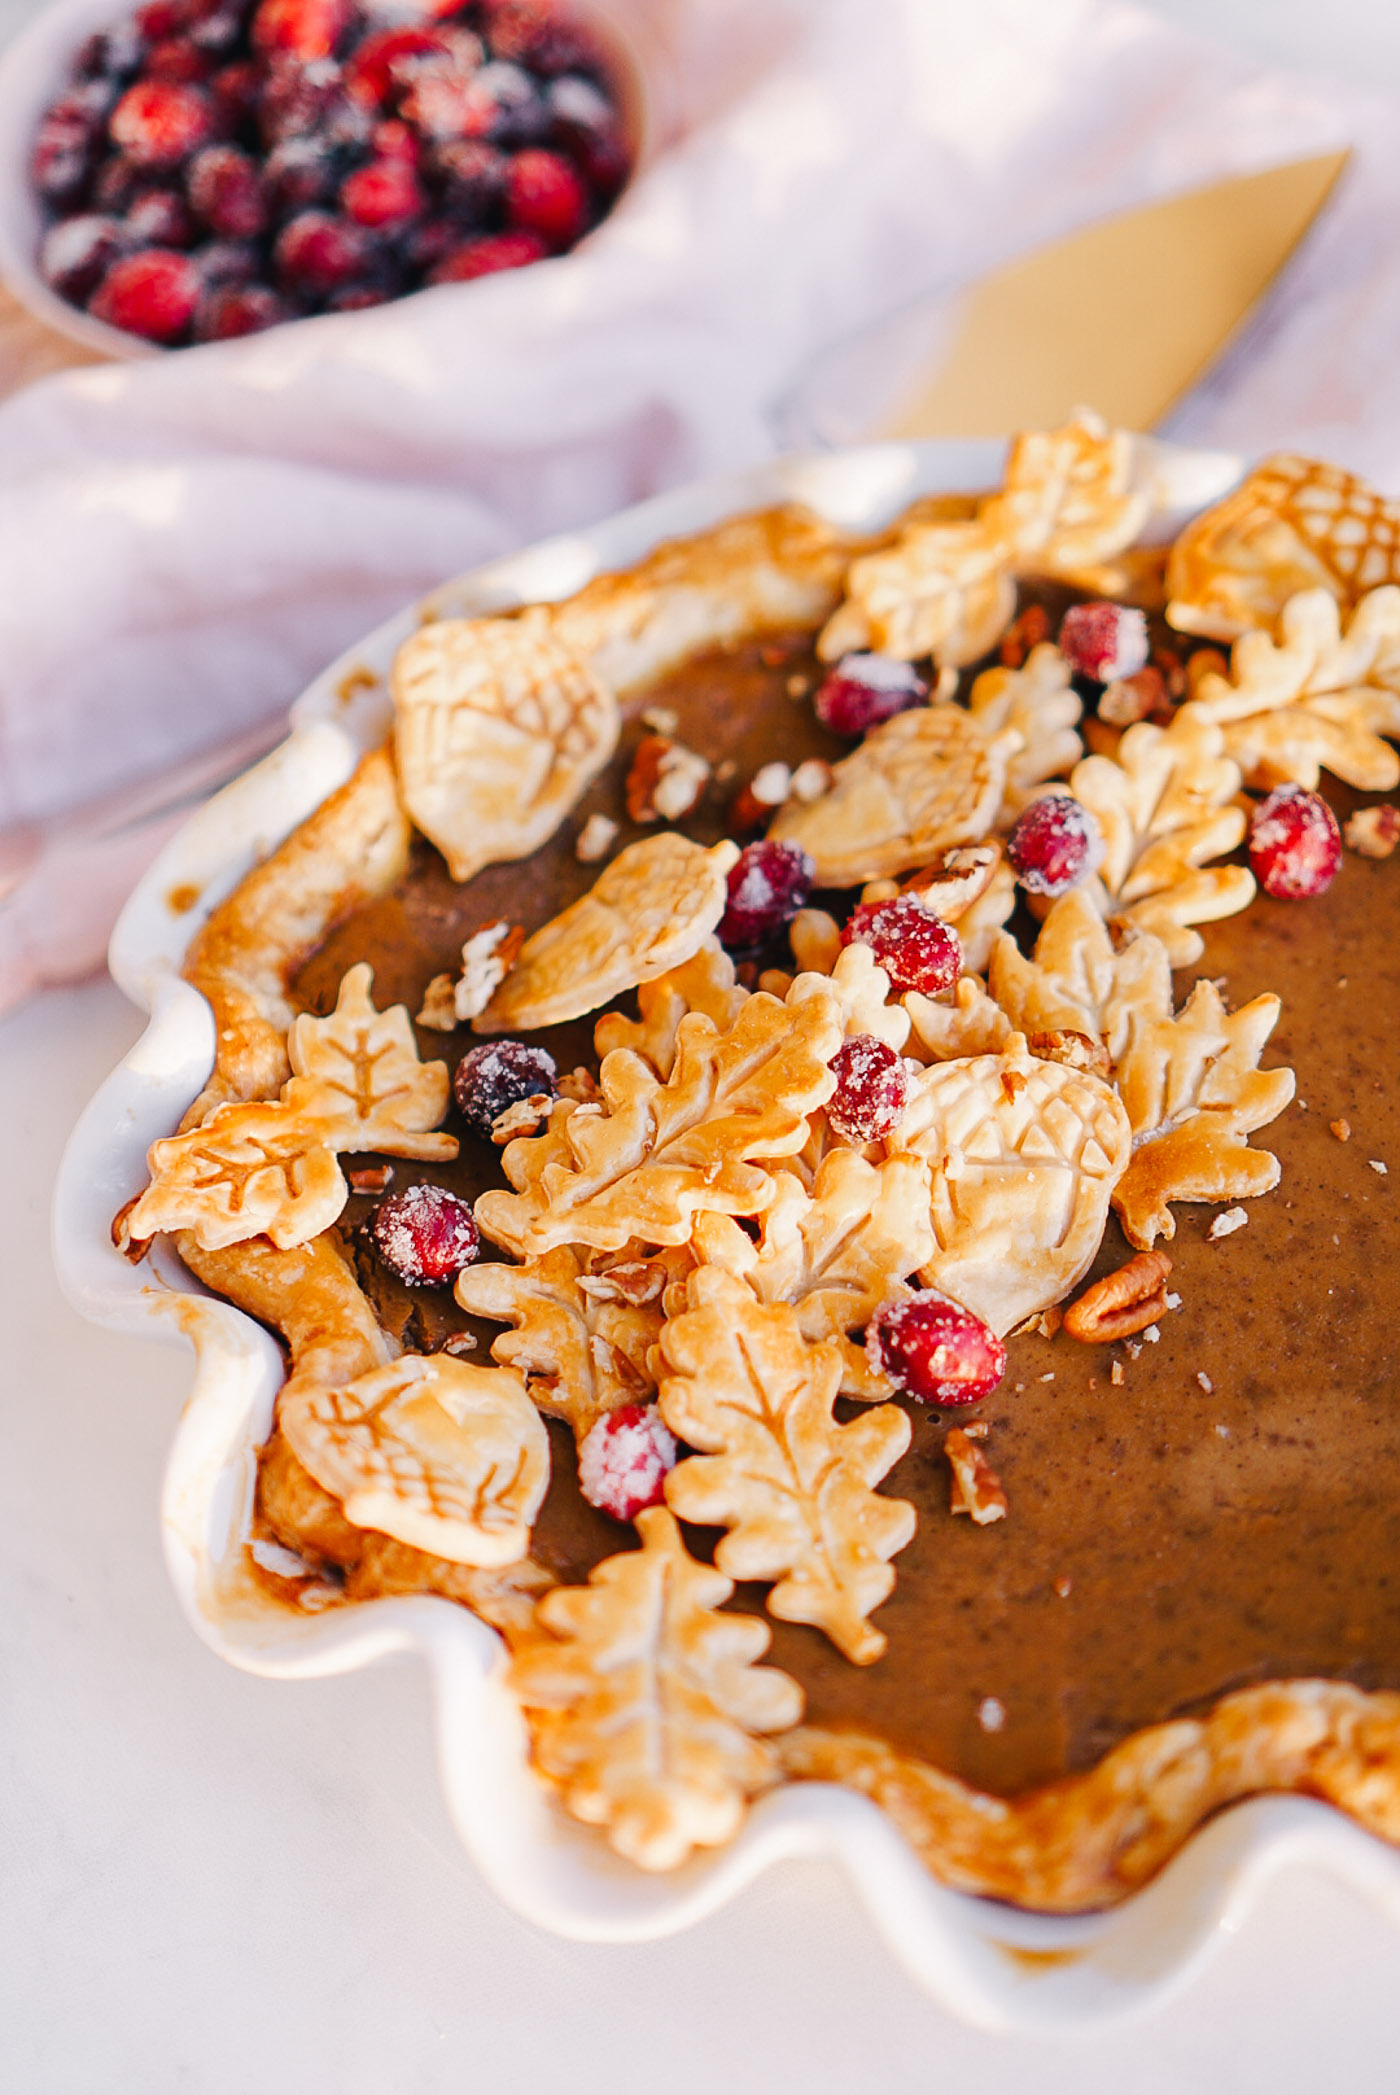 maple pumpkin pie topped with pie crust leaves and sugared cranberries in white ruffle dish